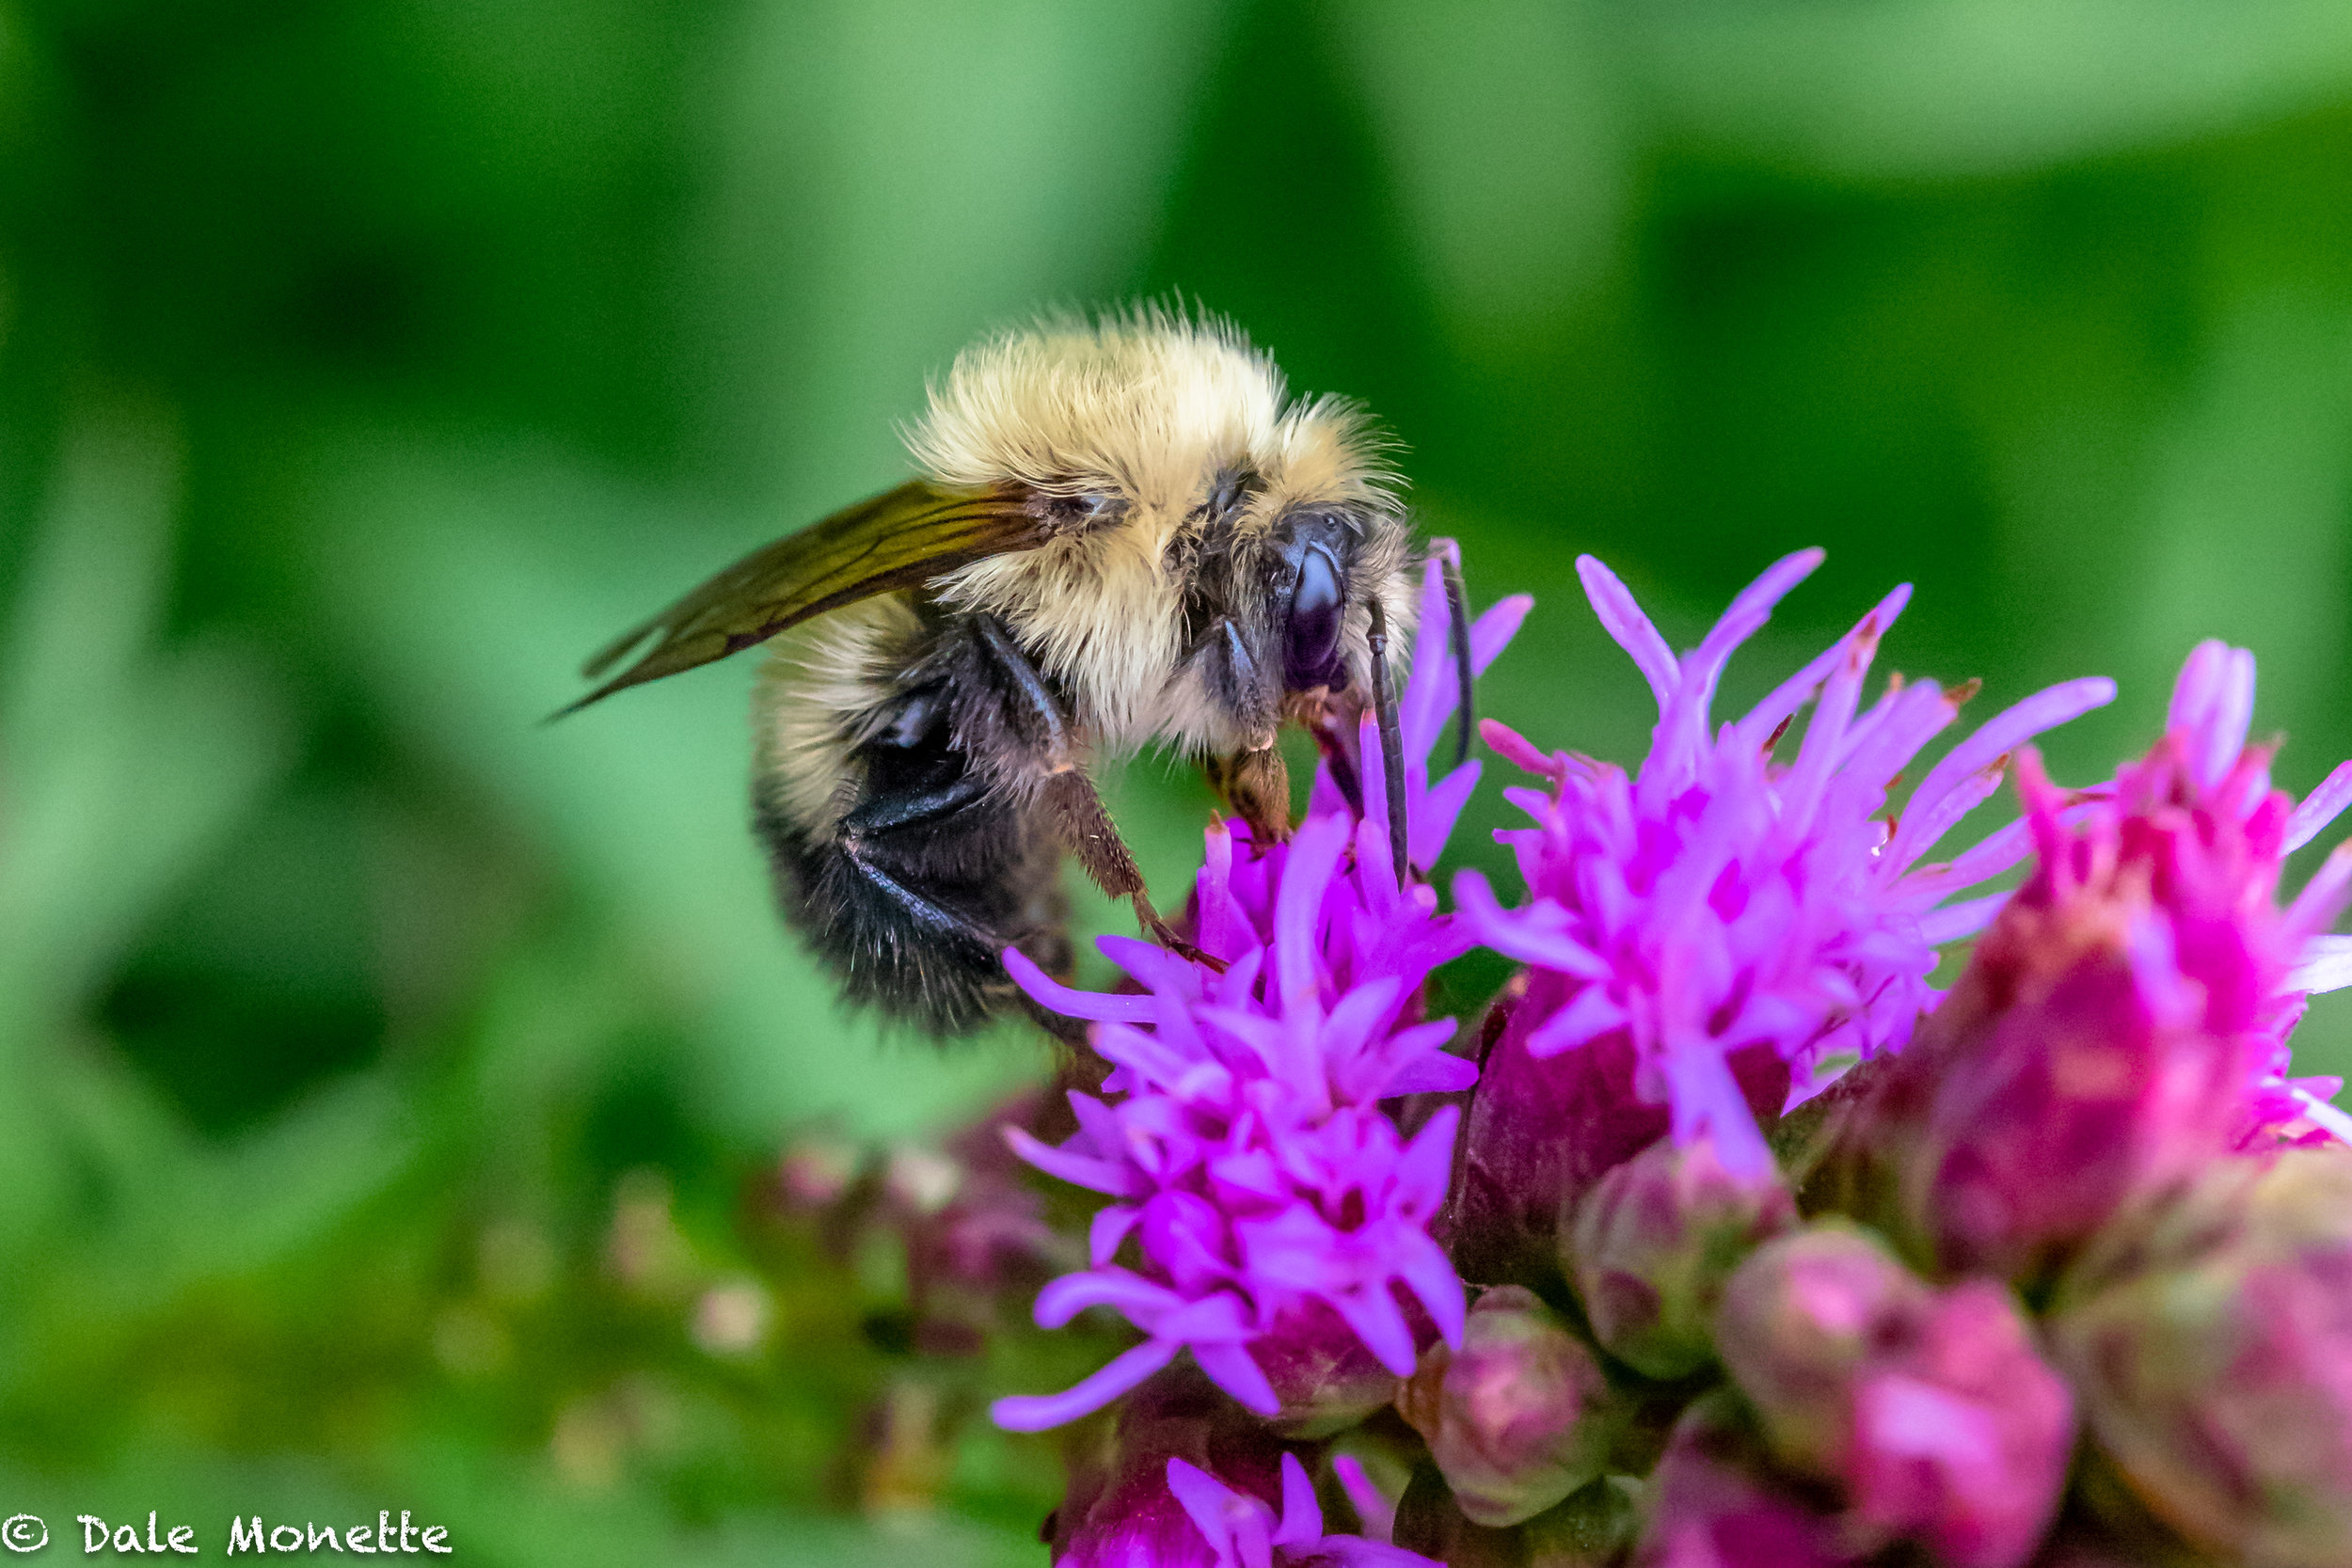 This bumble bee was taking his time with this flower so I tried out my new Nikon 60mm micro lens.. what do ya think?